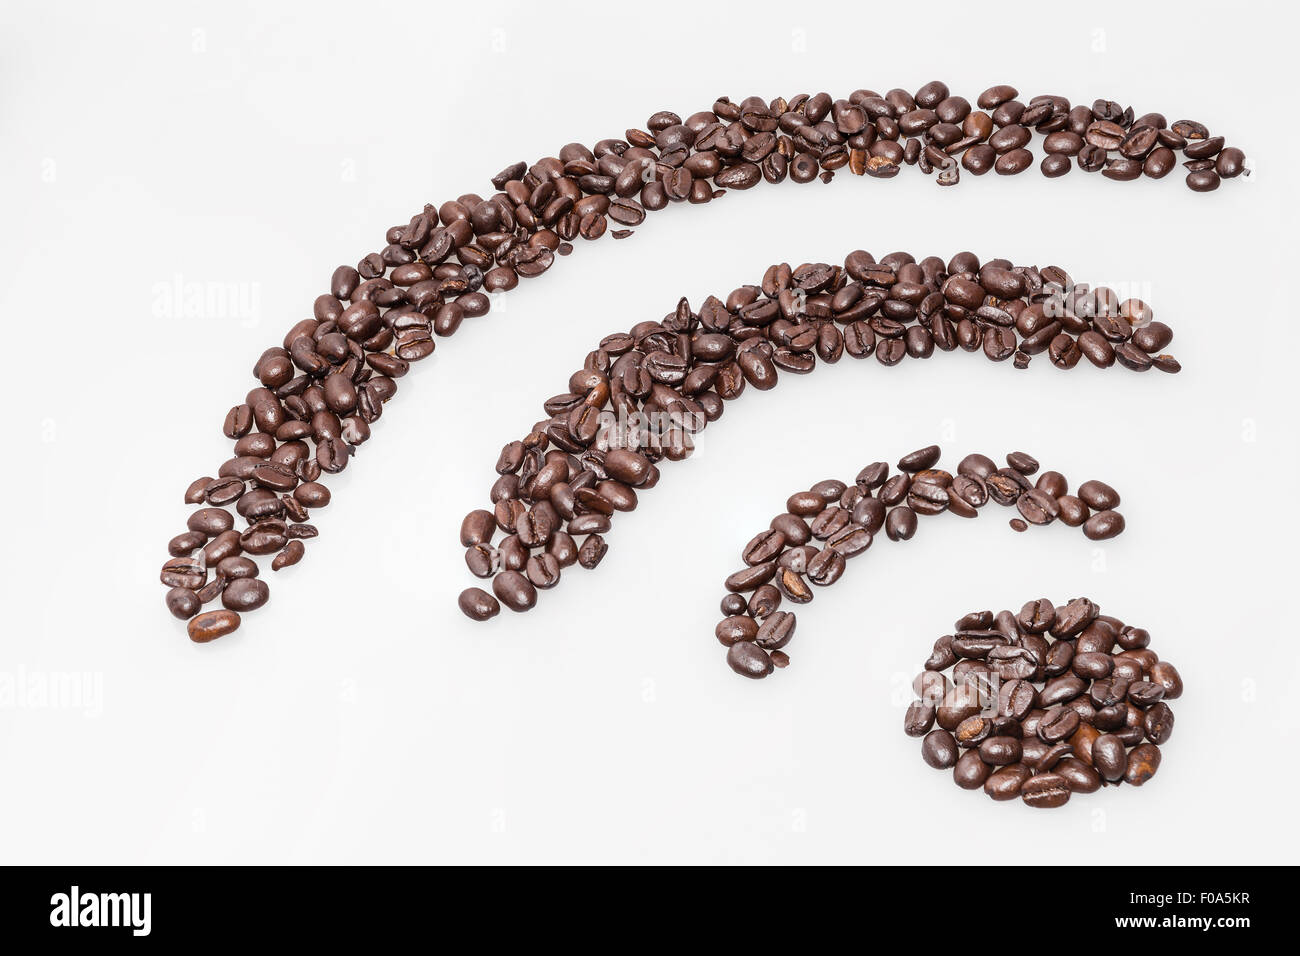 Wifi internet connection symbol made with coffee beans stock photo wifi internet connection symbol made with coffee beans buycottarizona Images